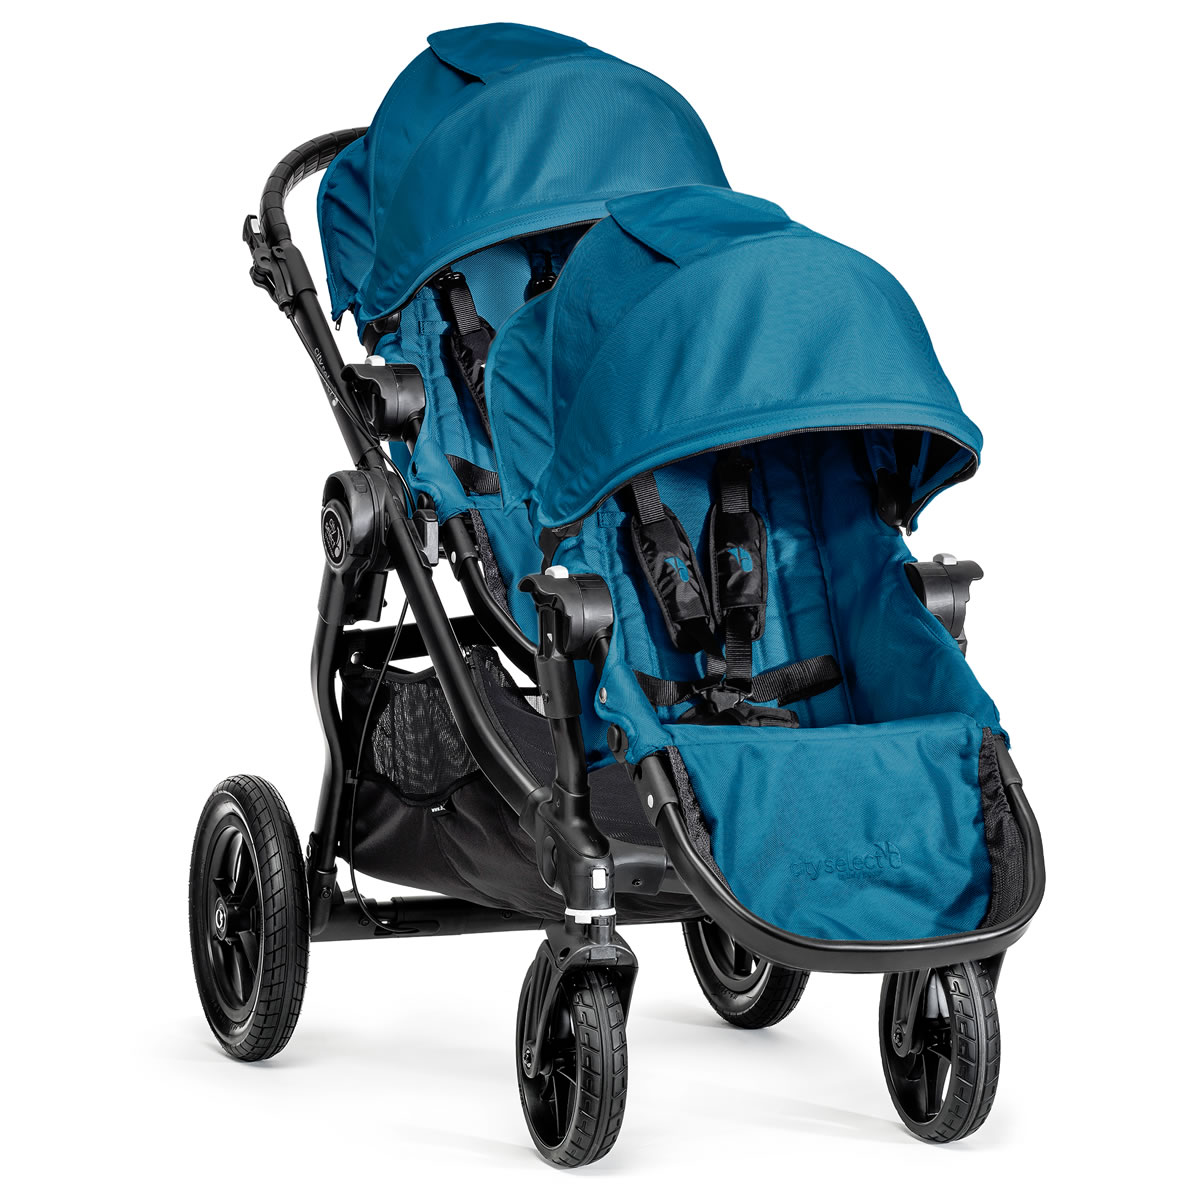 Baby Jogger City Select Double Stroller - Teal